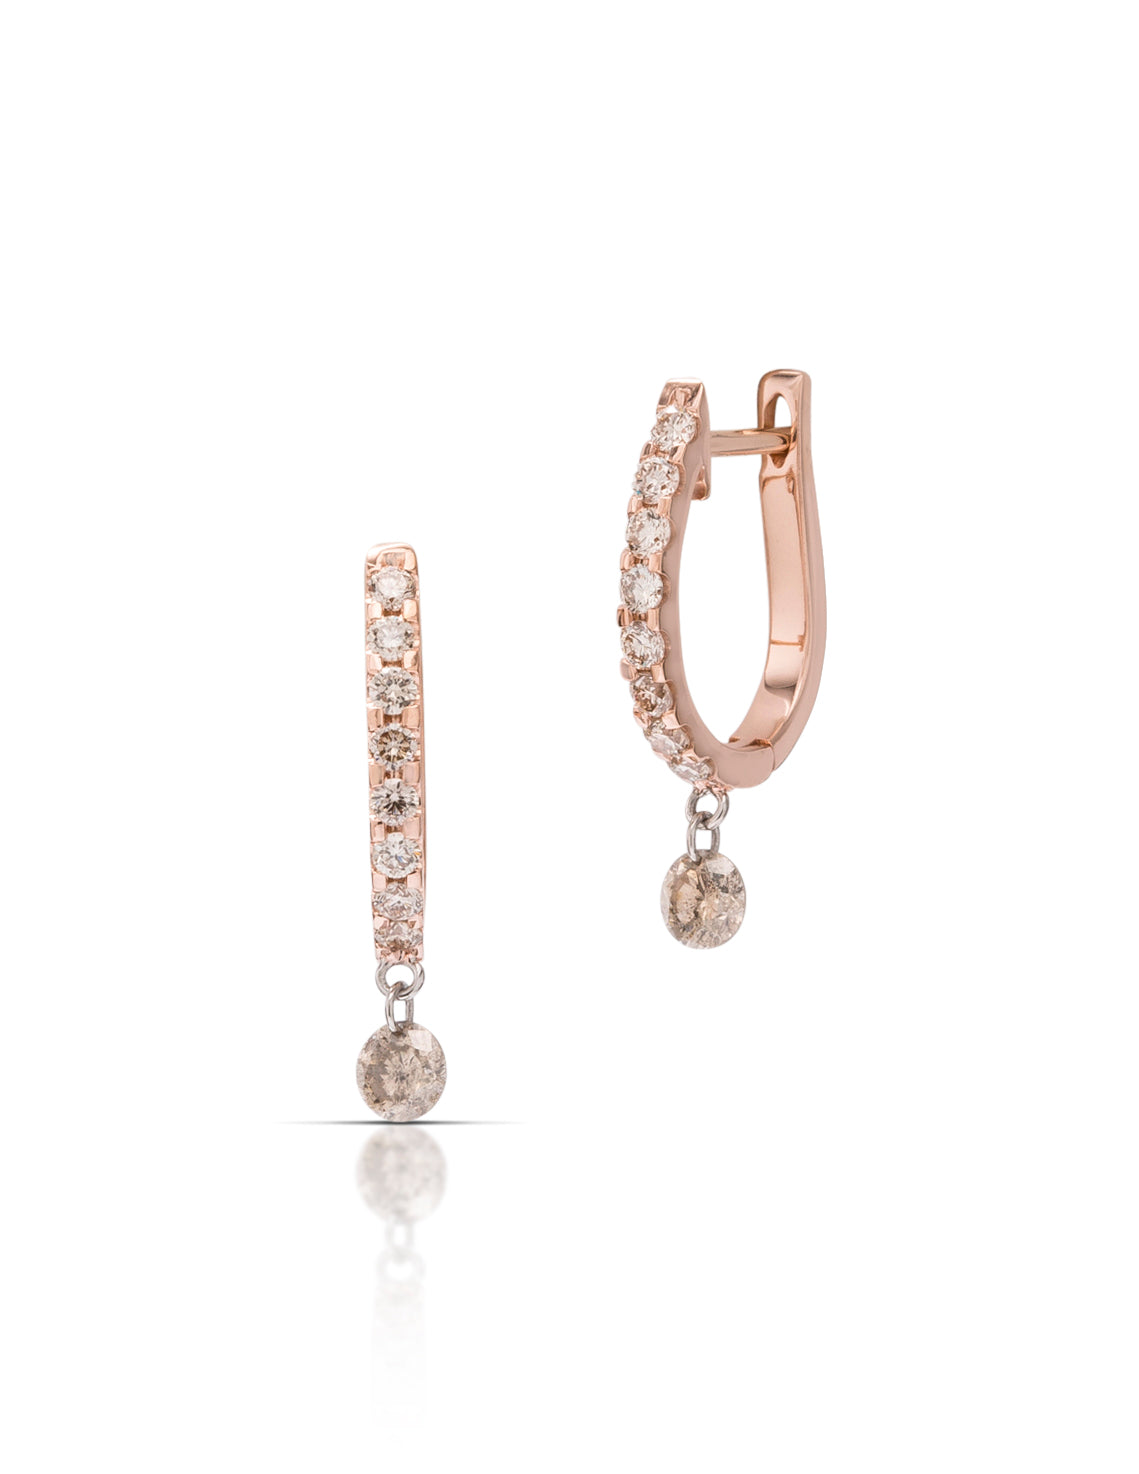 Dancing Diamond Hoop Earrings - Charles Koll Jewellers